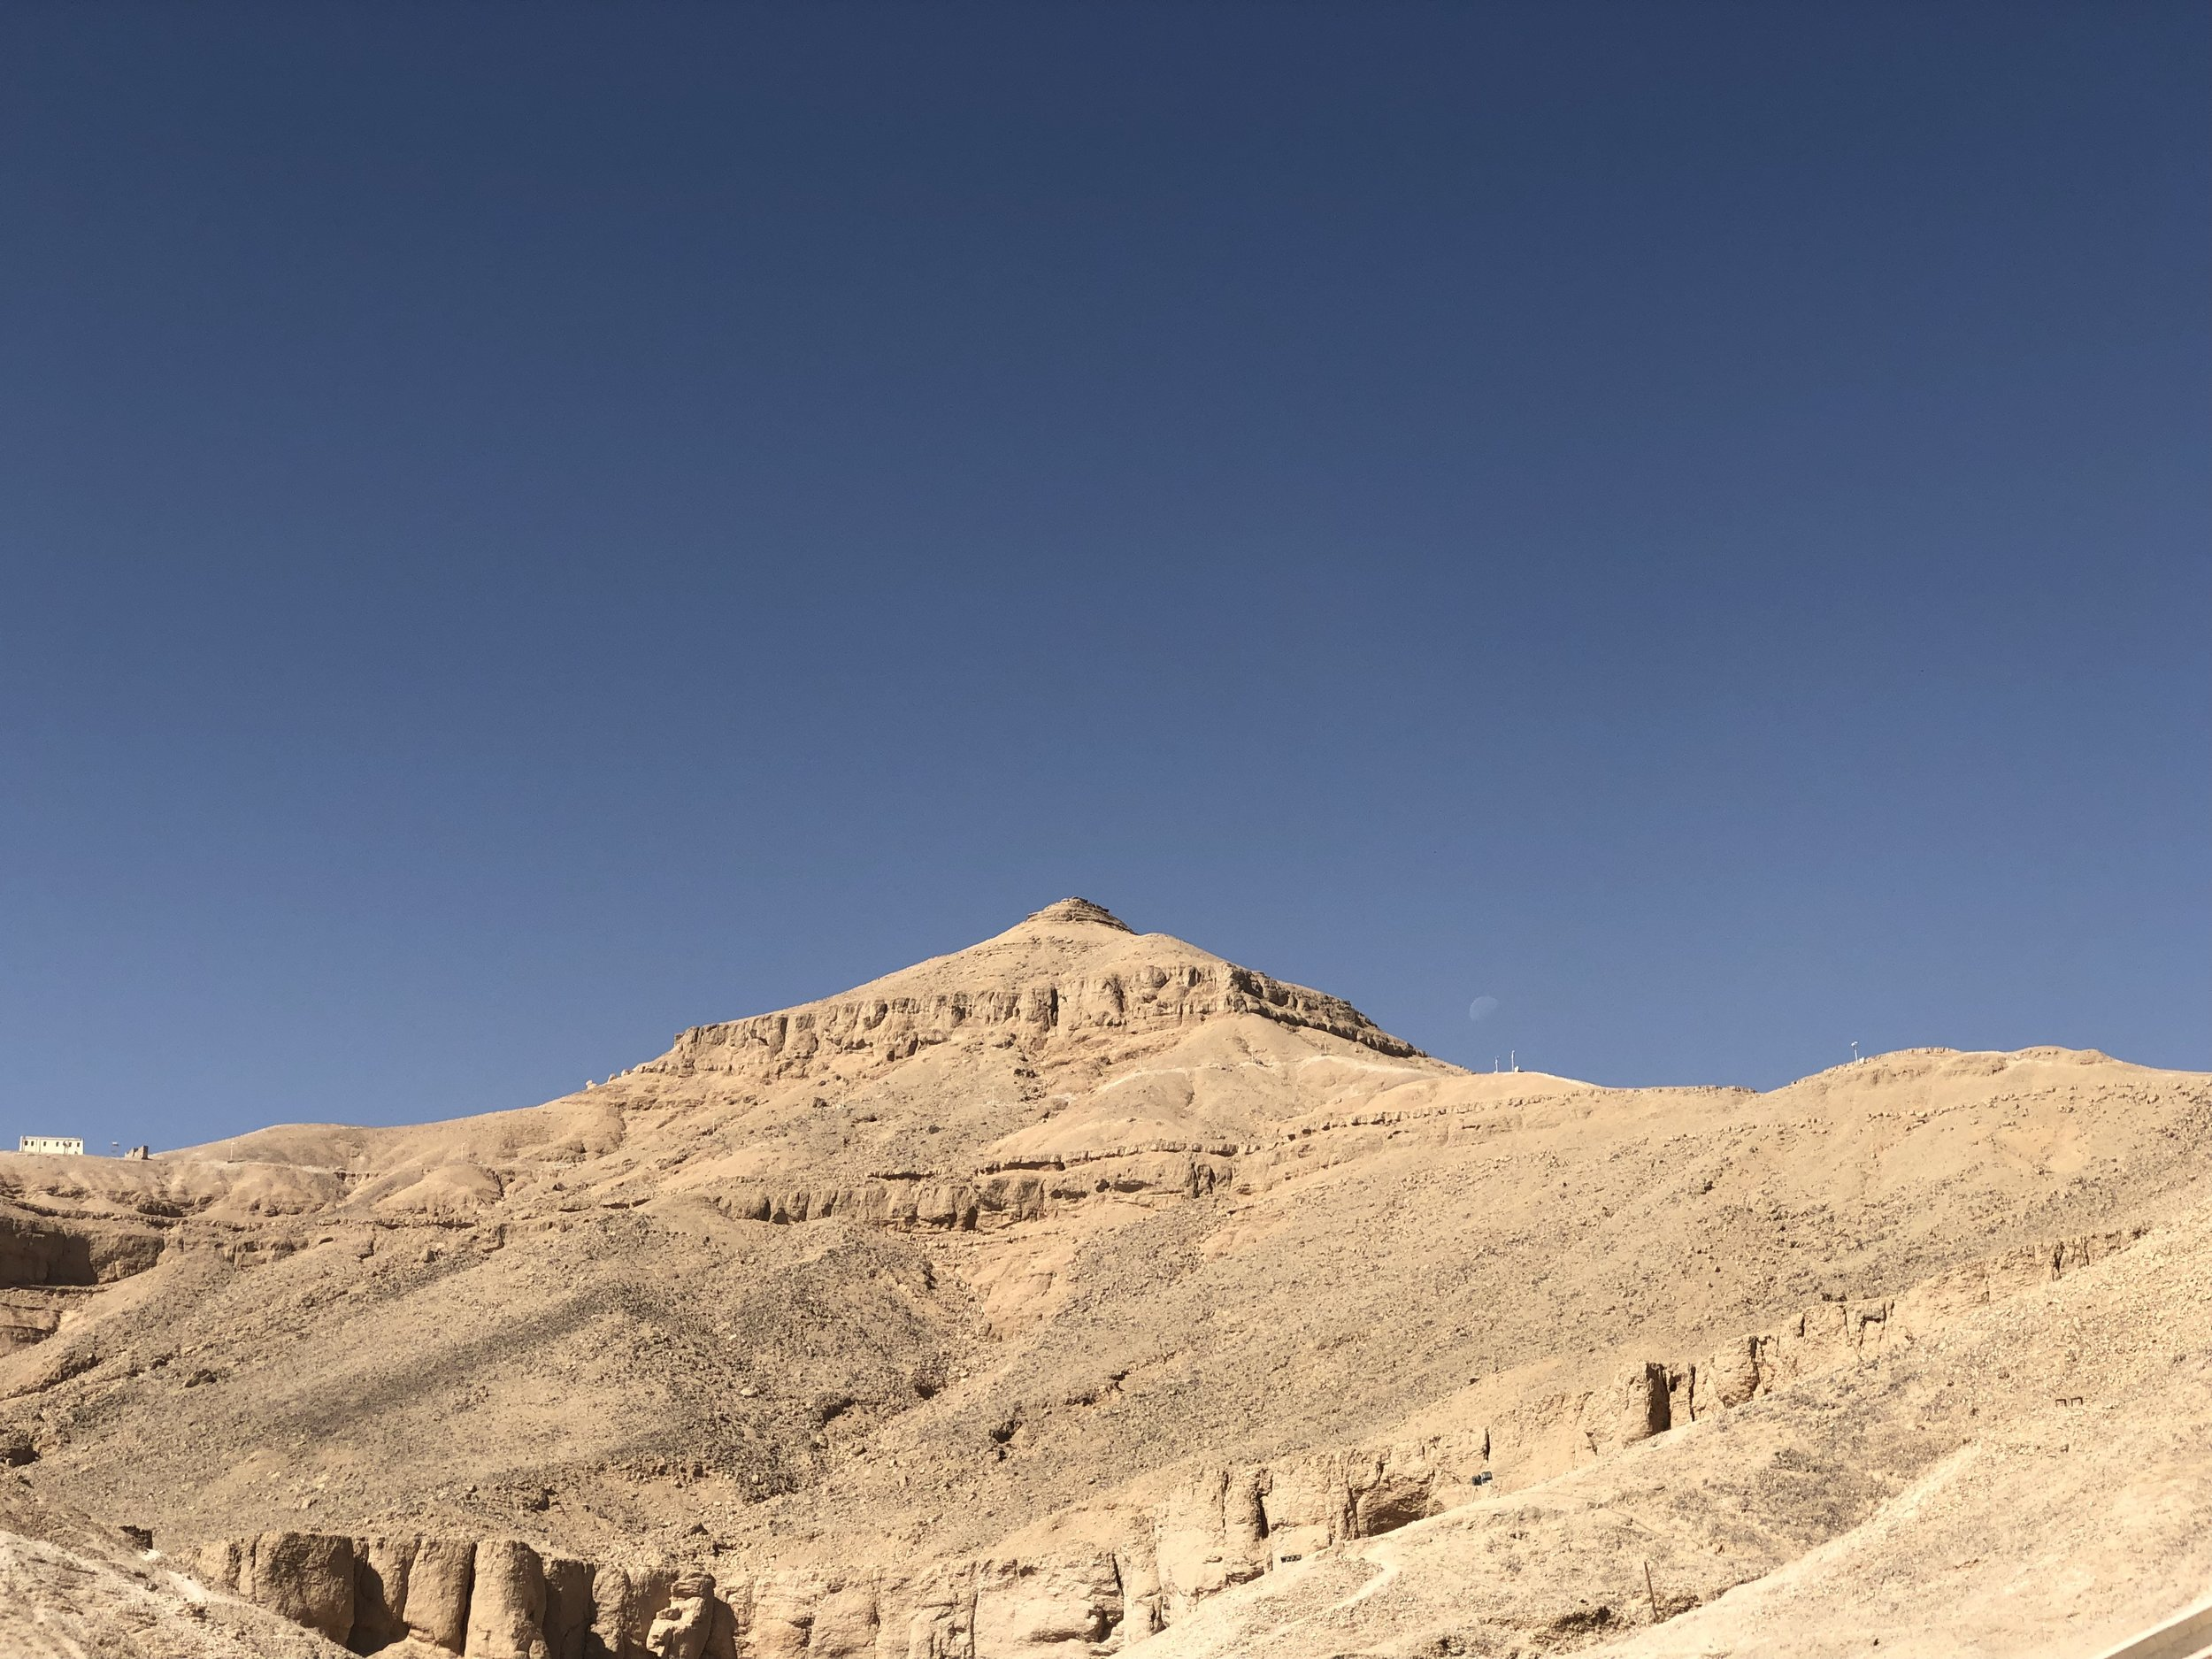 The site was chosen in part because its tip, the peak of El Qurn, resembled a pyramid